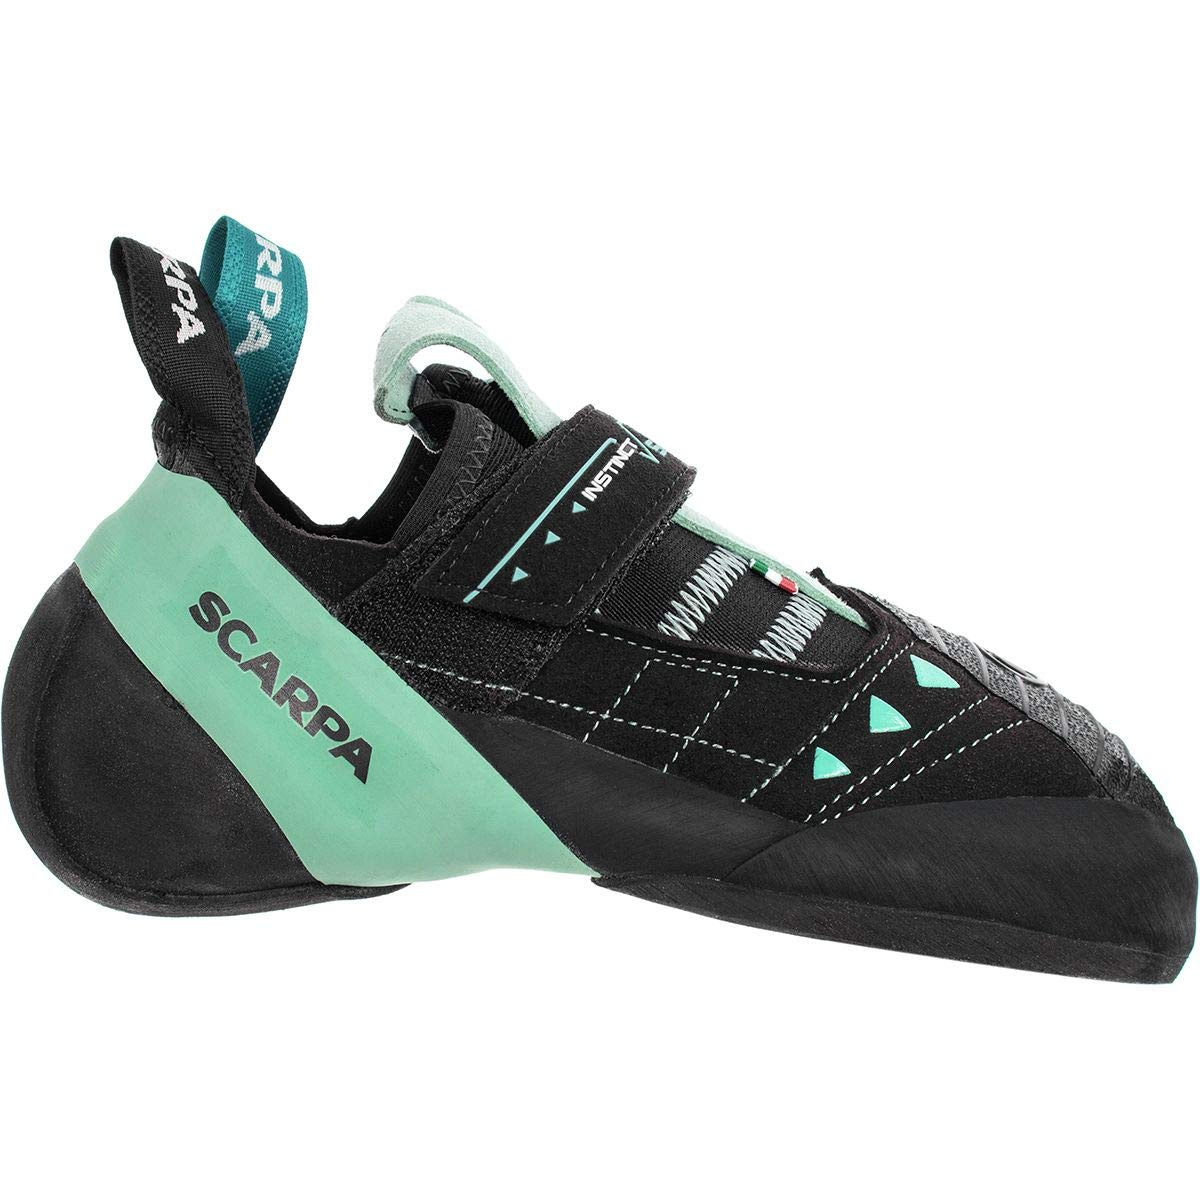 SCARPA Instinct VS Climbing Shoe - Women's Black/Aqua 34.5 by SCARPA